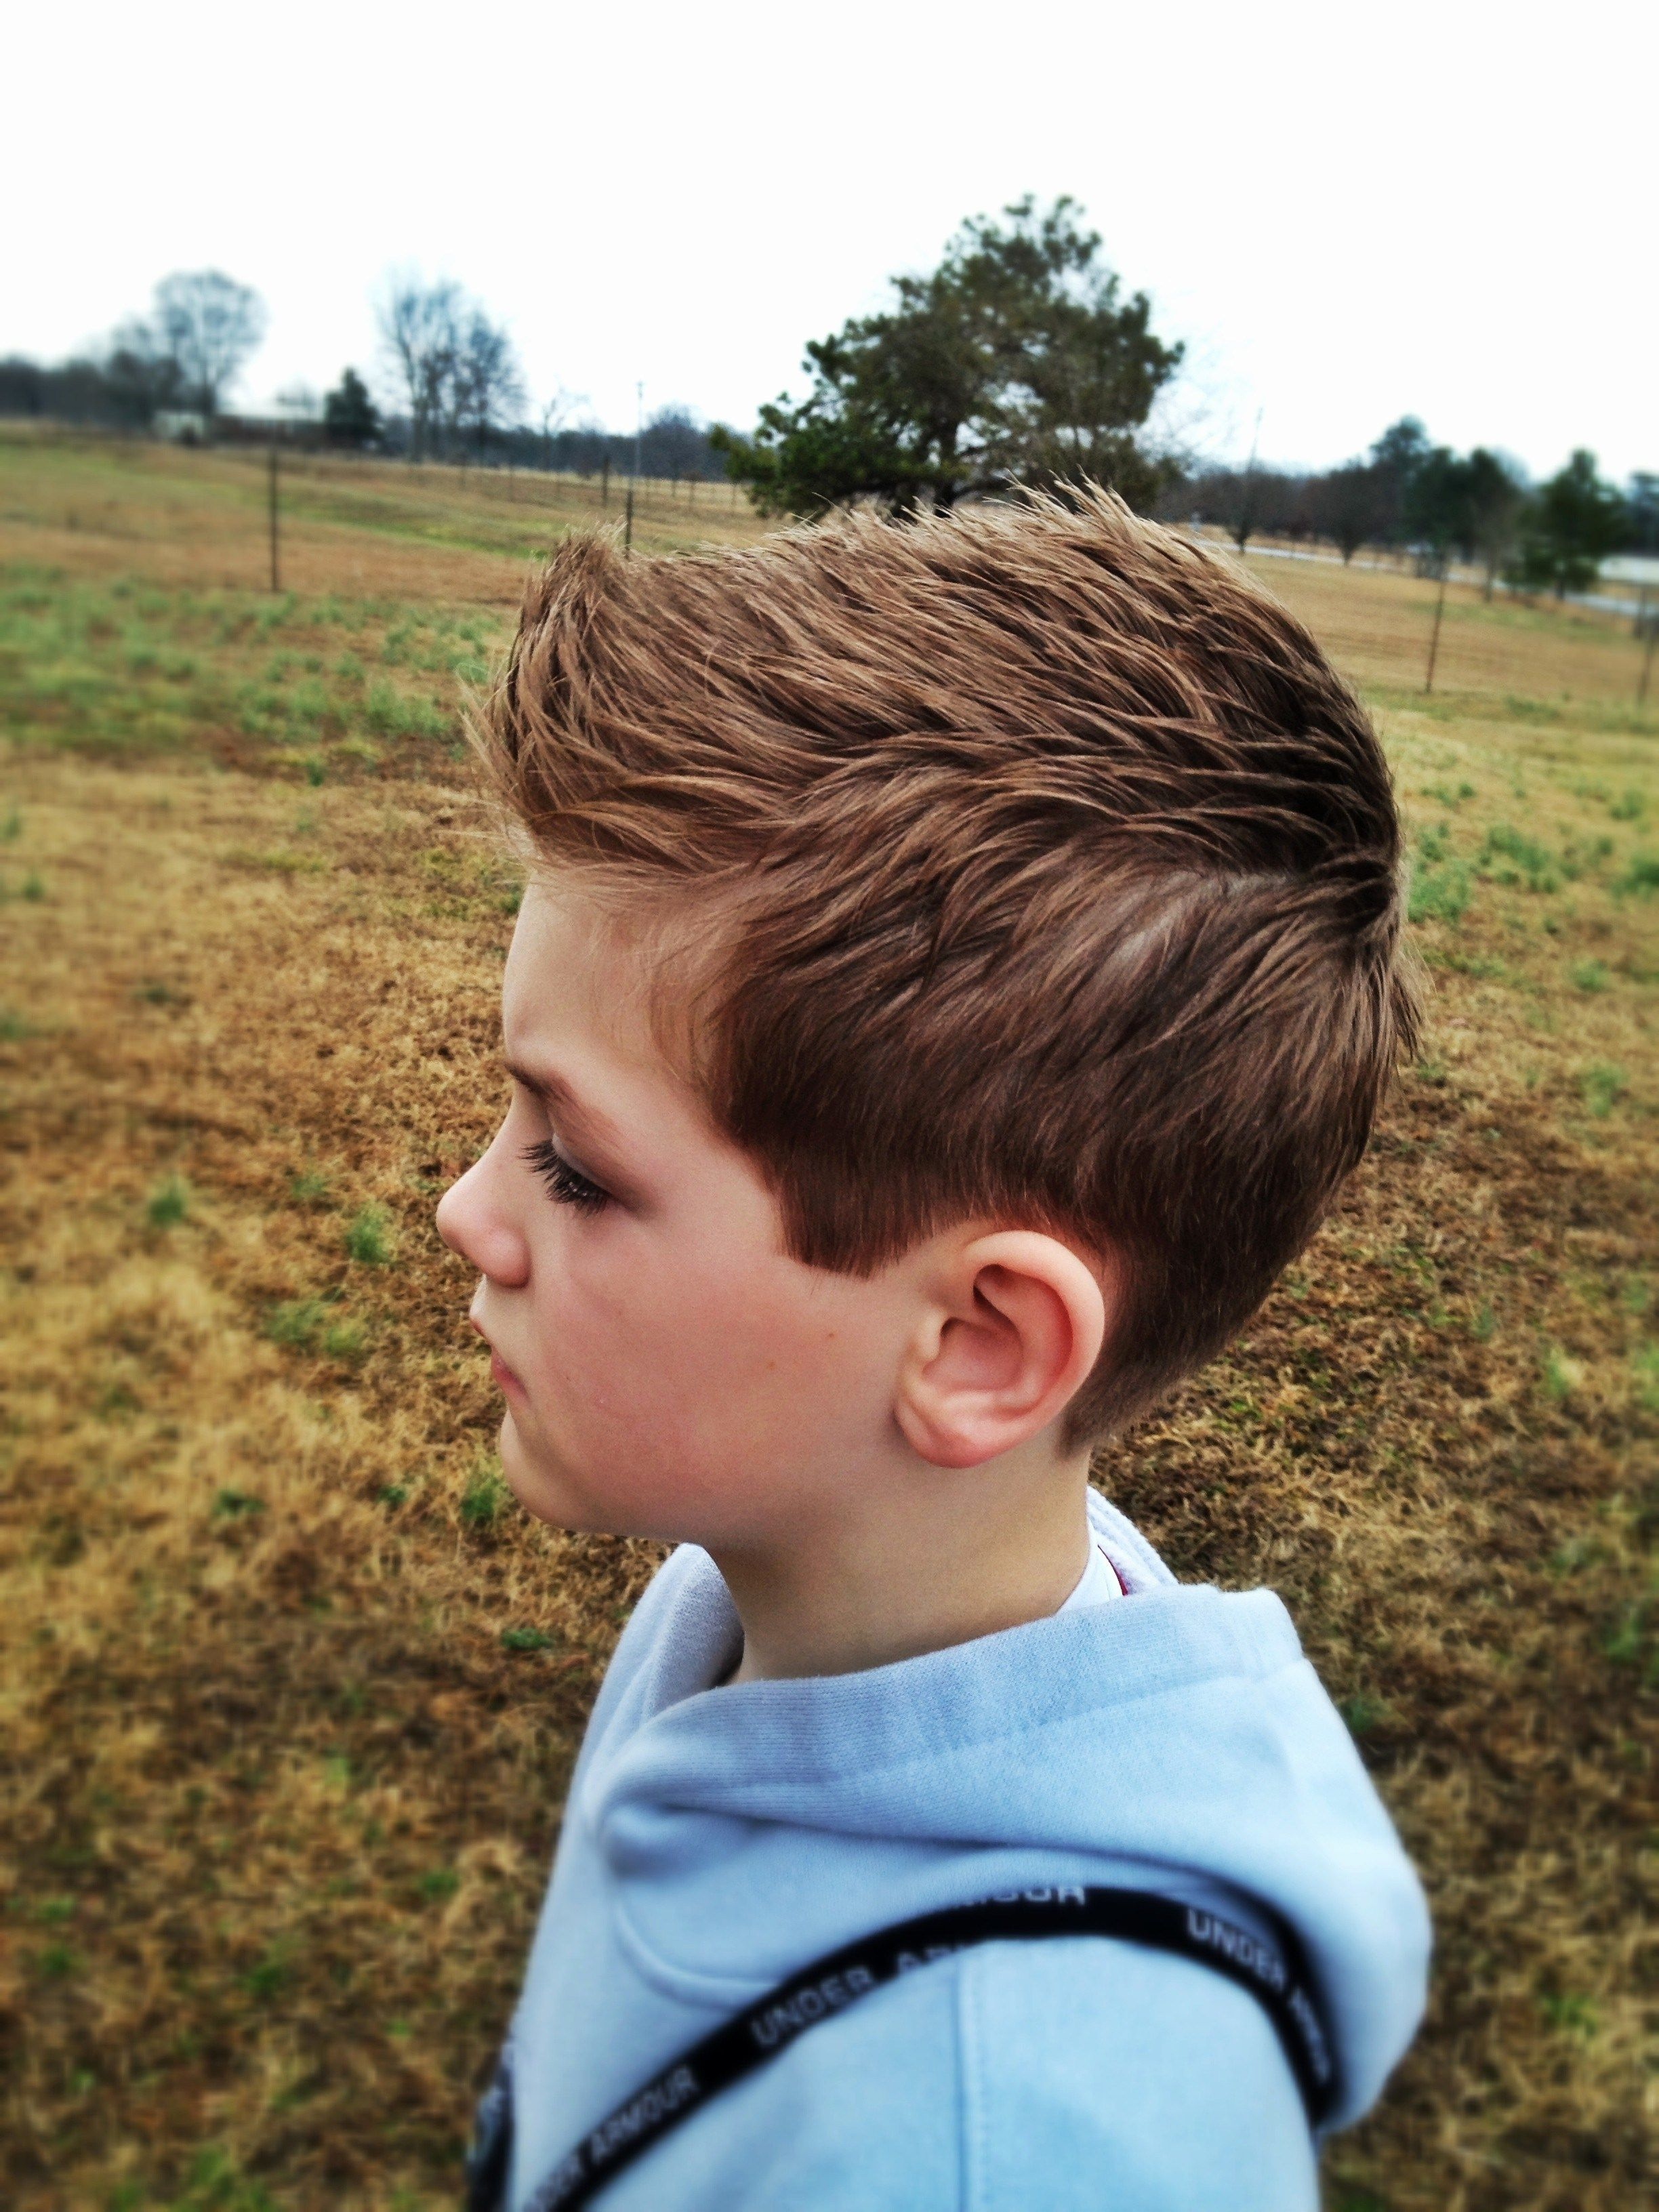 10 different 5 year old haircuts ideas | hairstyles library